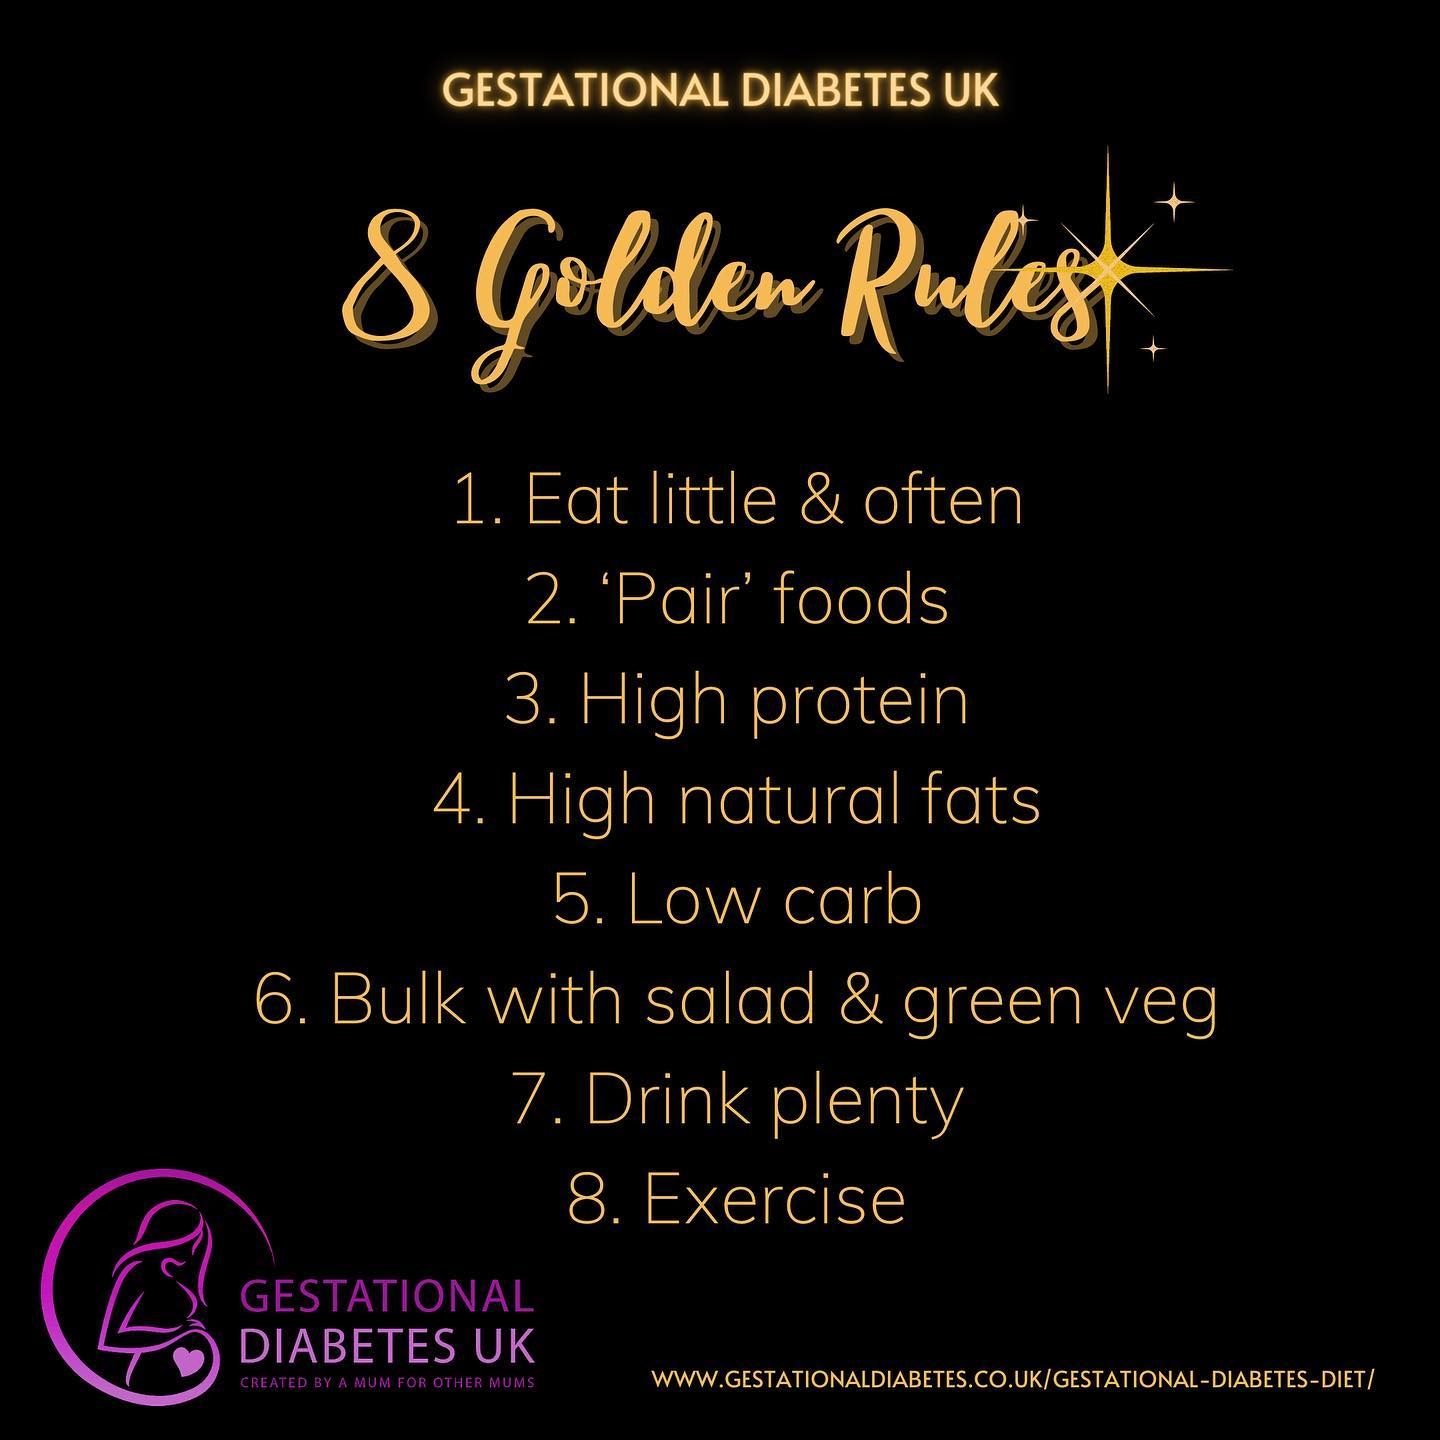 list of the GD UK 8 Golden Rules for a gestational diabetes diet